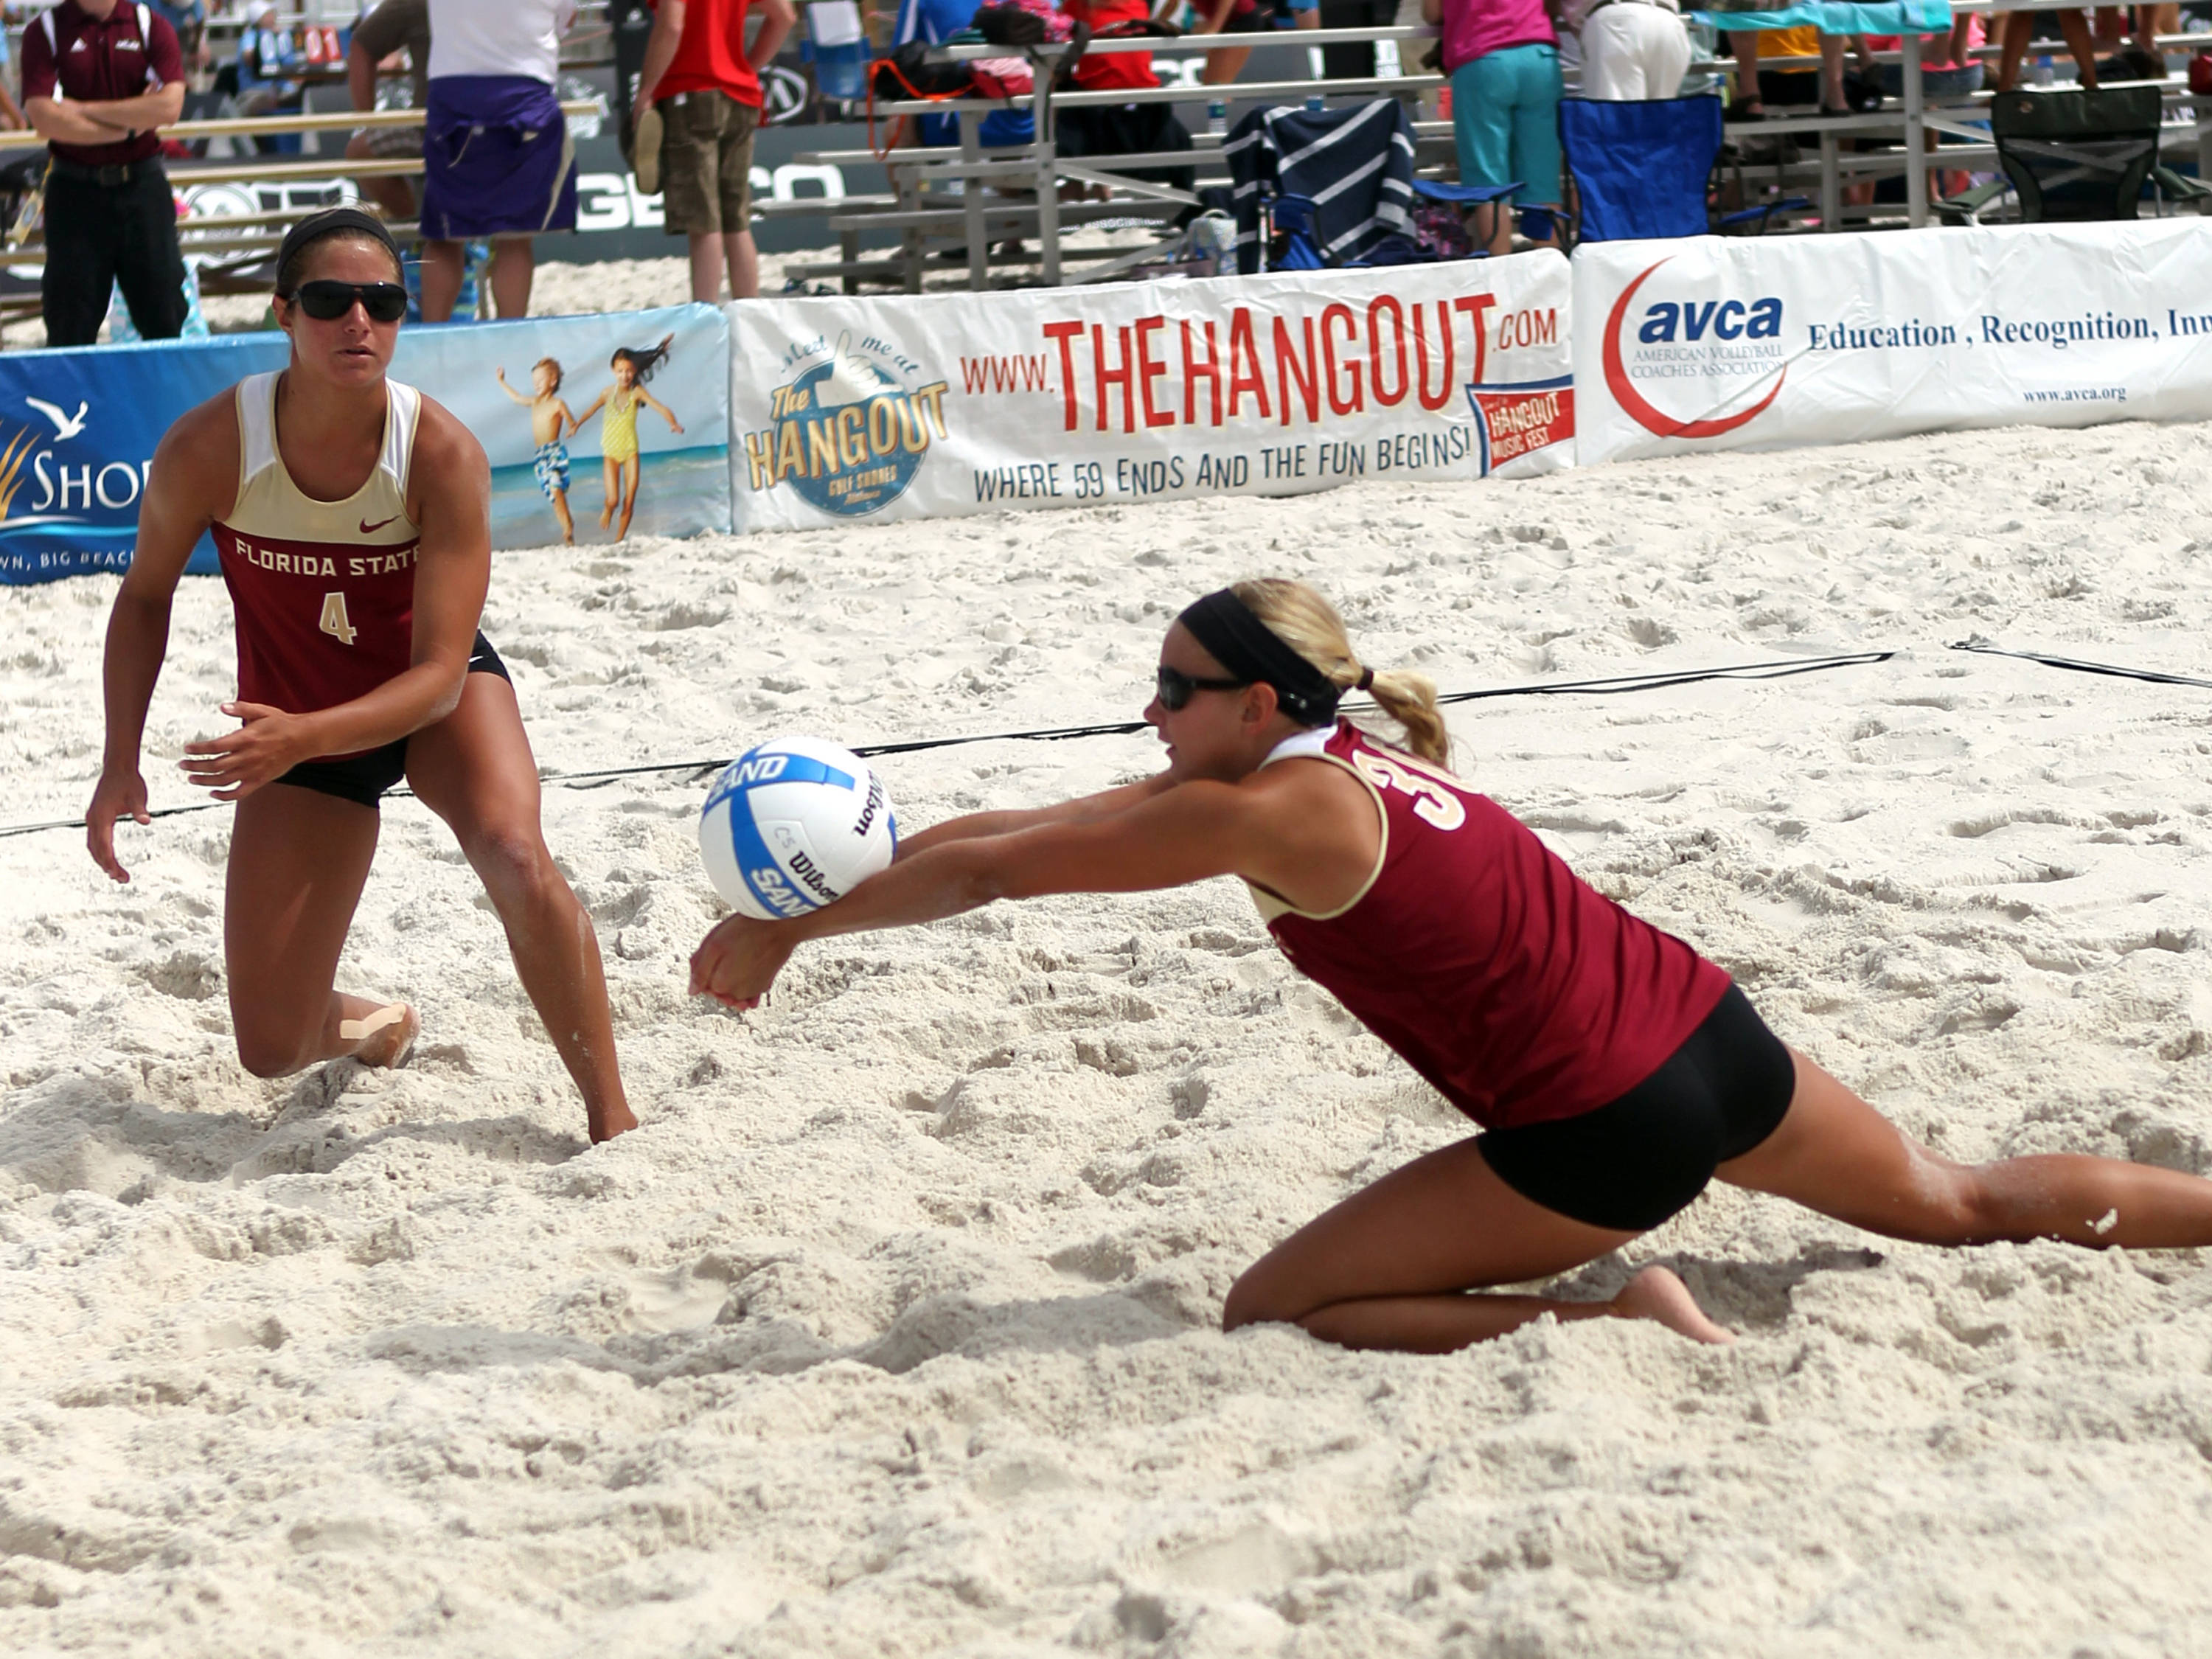 Stephanie Pellitteri (4), Kristina Pellitteri (30), AVCA Collegiate Sand Volleyball National Championships,  Gulf Shores, Alabama,05/03/13 . (Photo by Steve Musco)